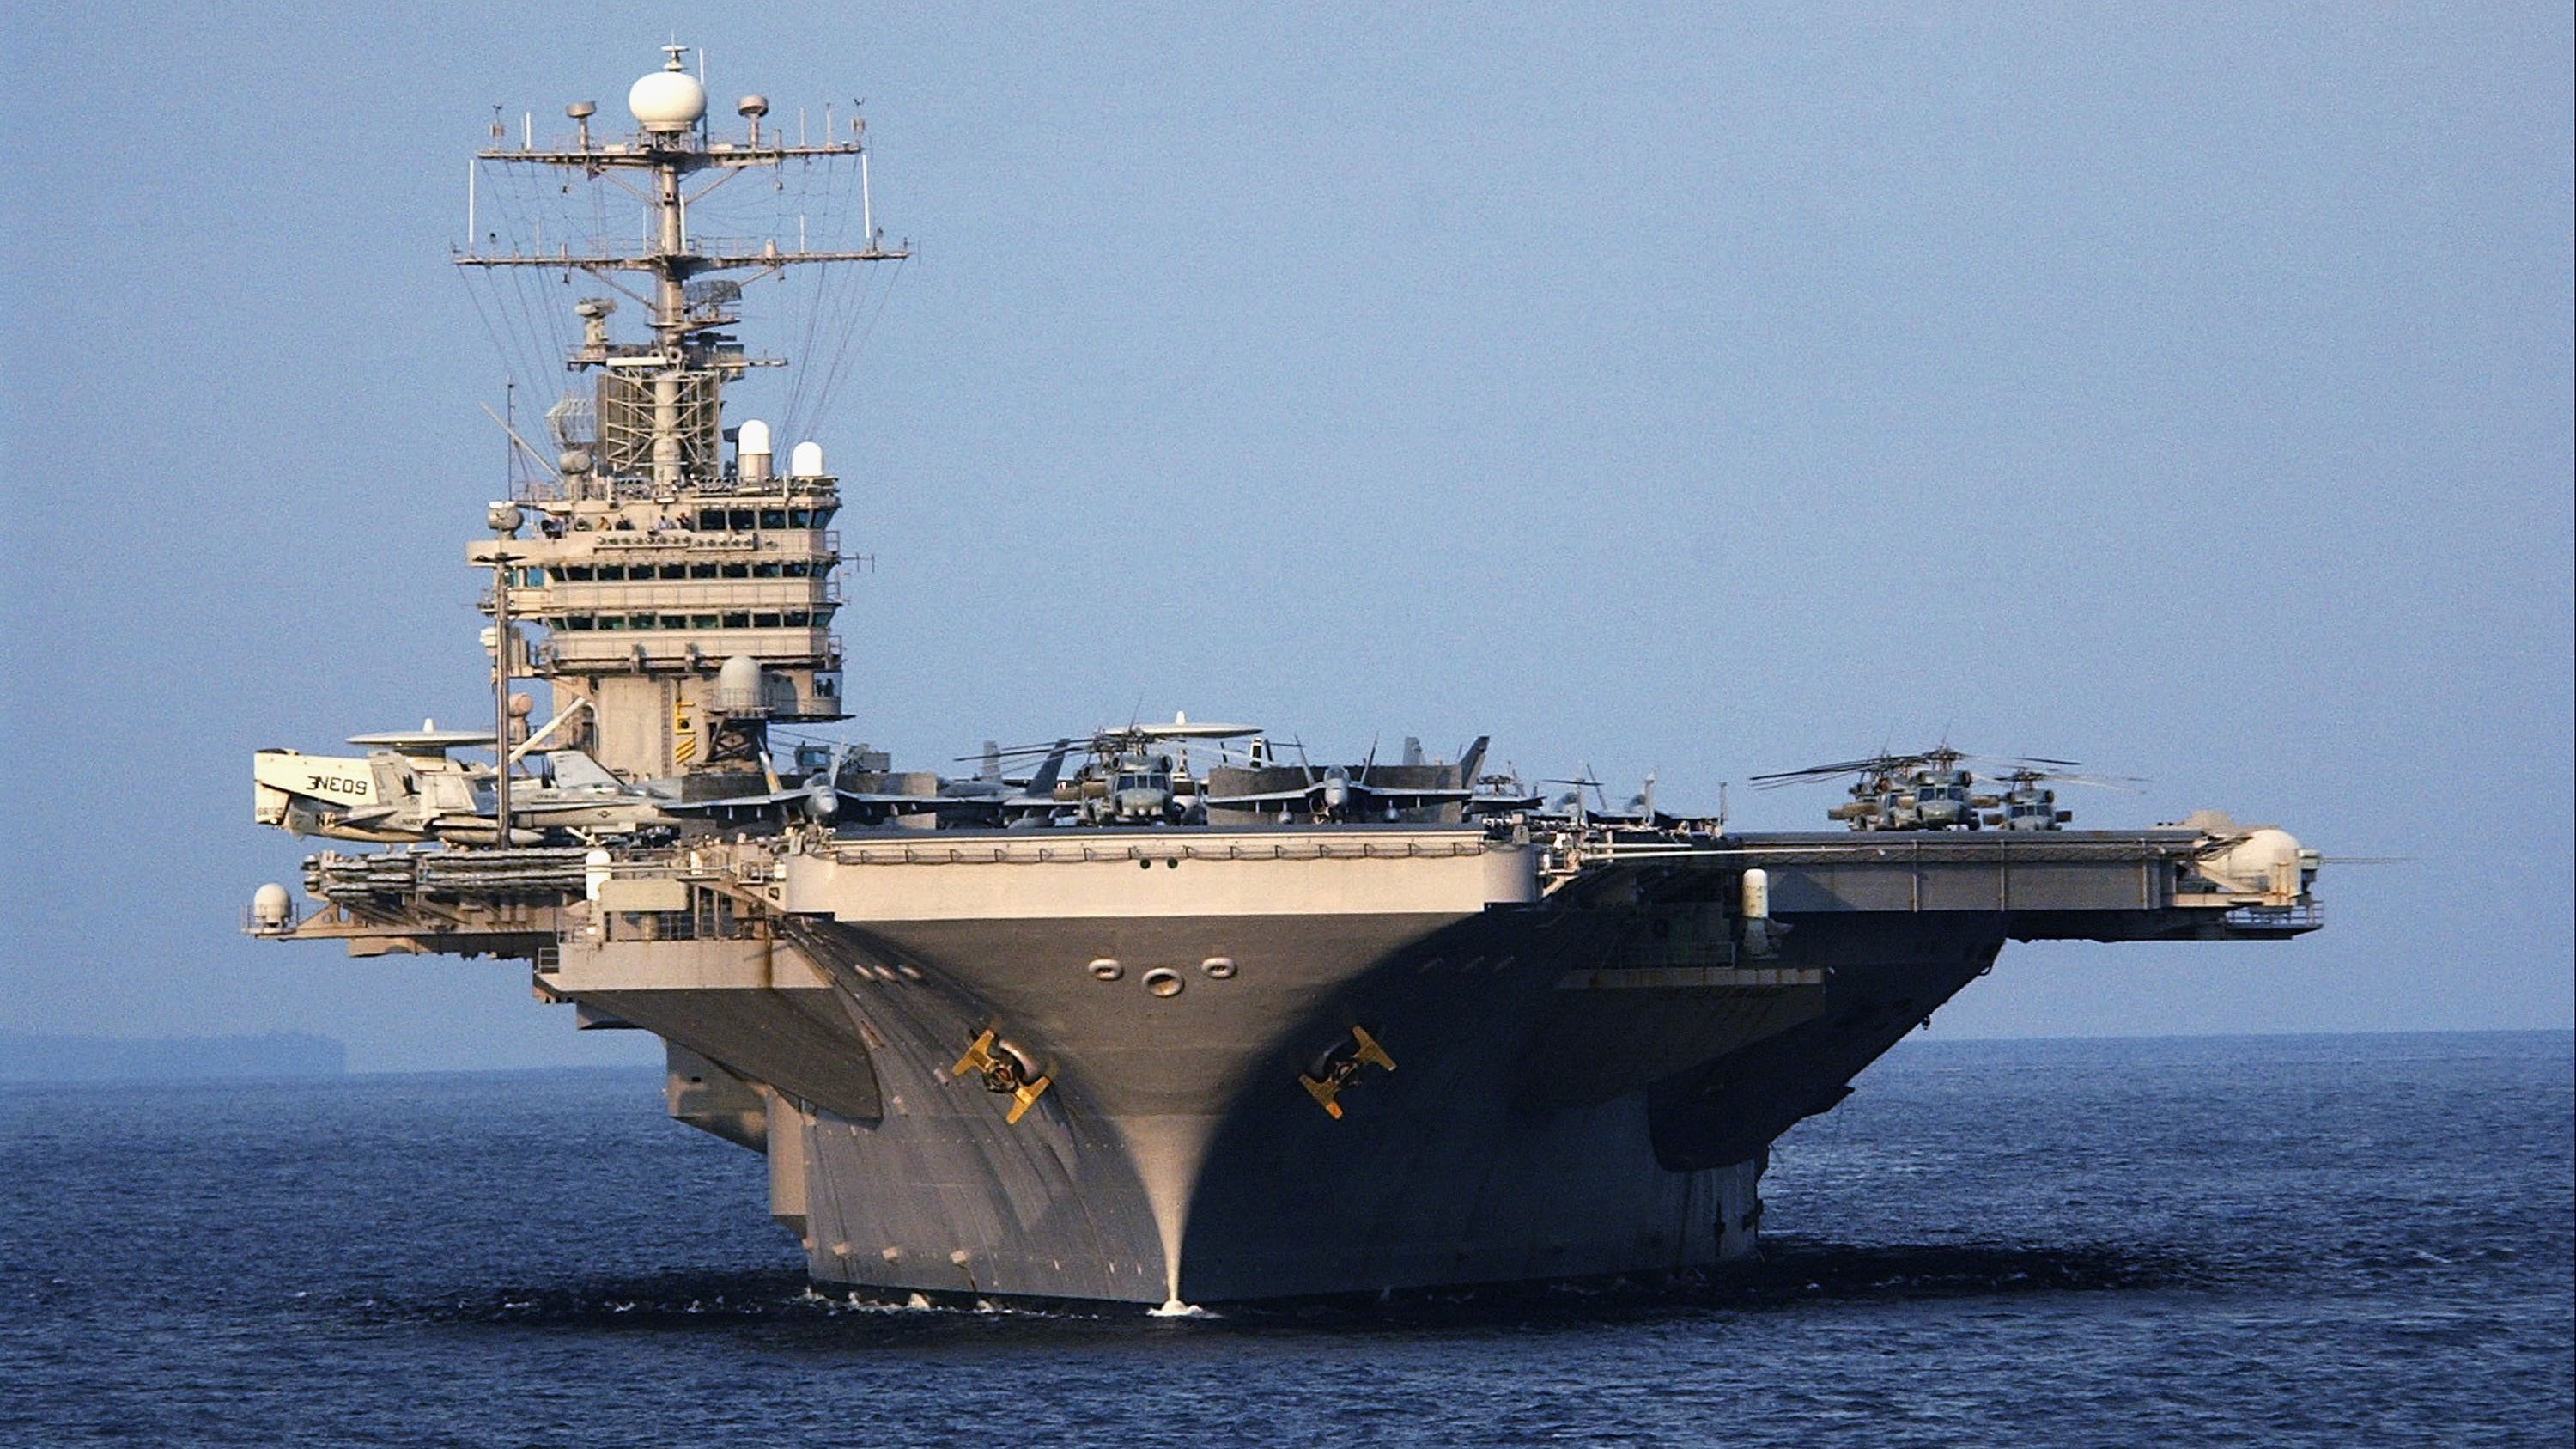 US sailor missing after going overboard in Persian Gulf